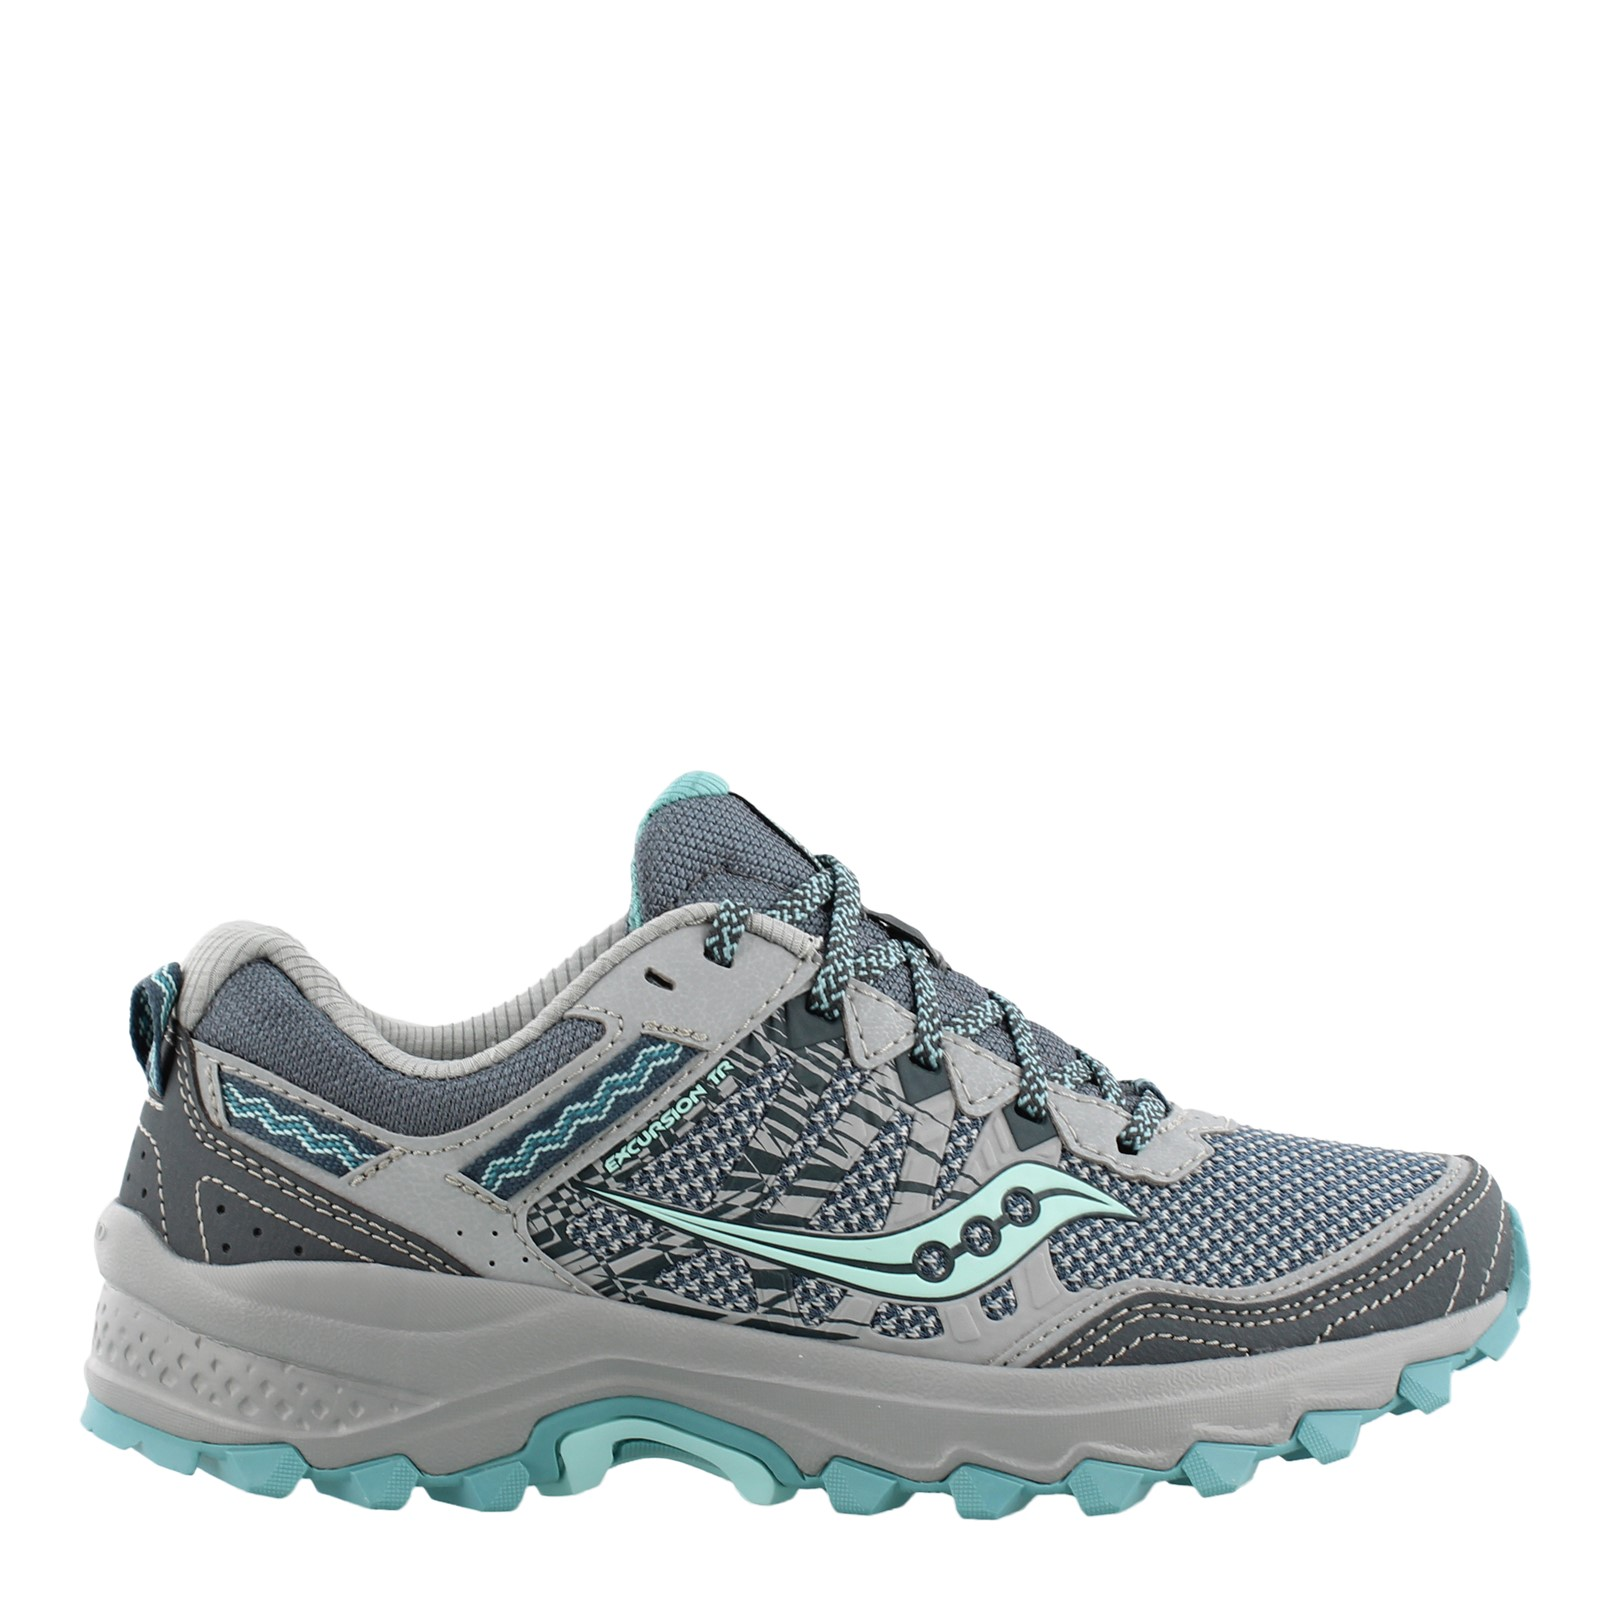 8d70596ea5 Women's Saucony, Excursion TR12 Trail Running Sneakers